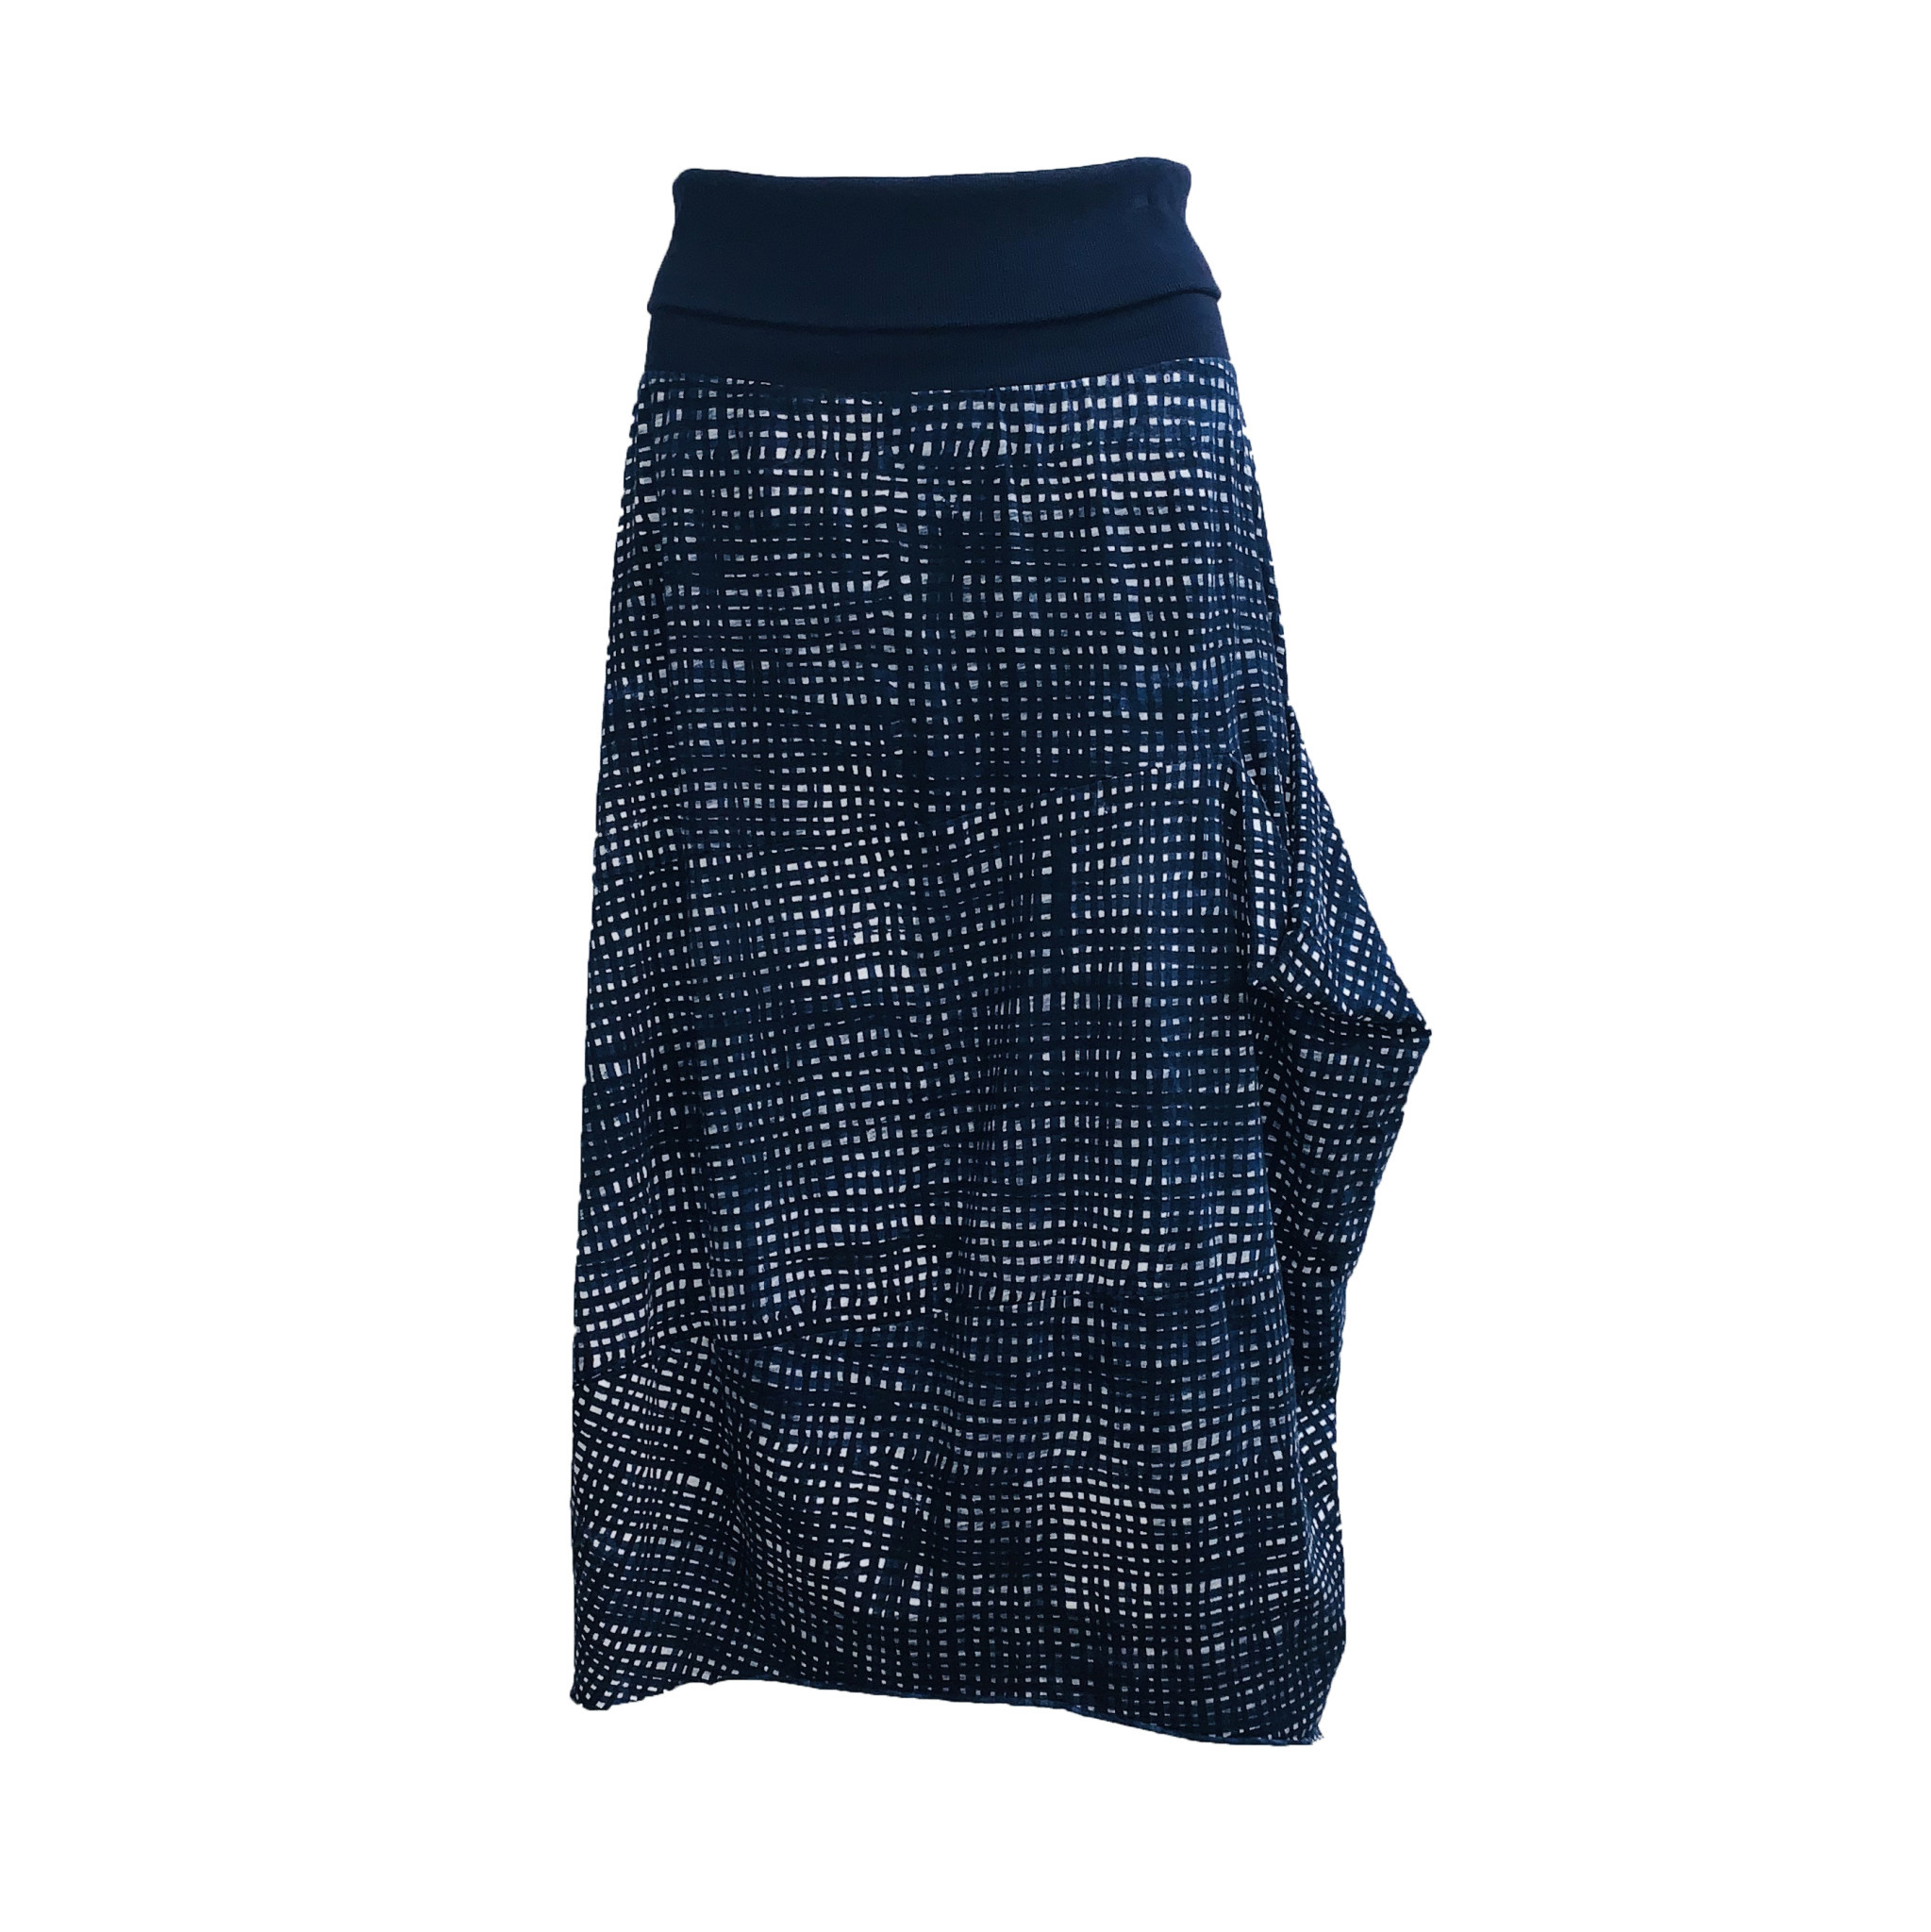 Studio Rundholz Studio Rundholz Rib Fabric Skirt - Martinique Print